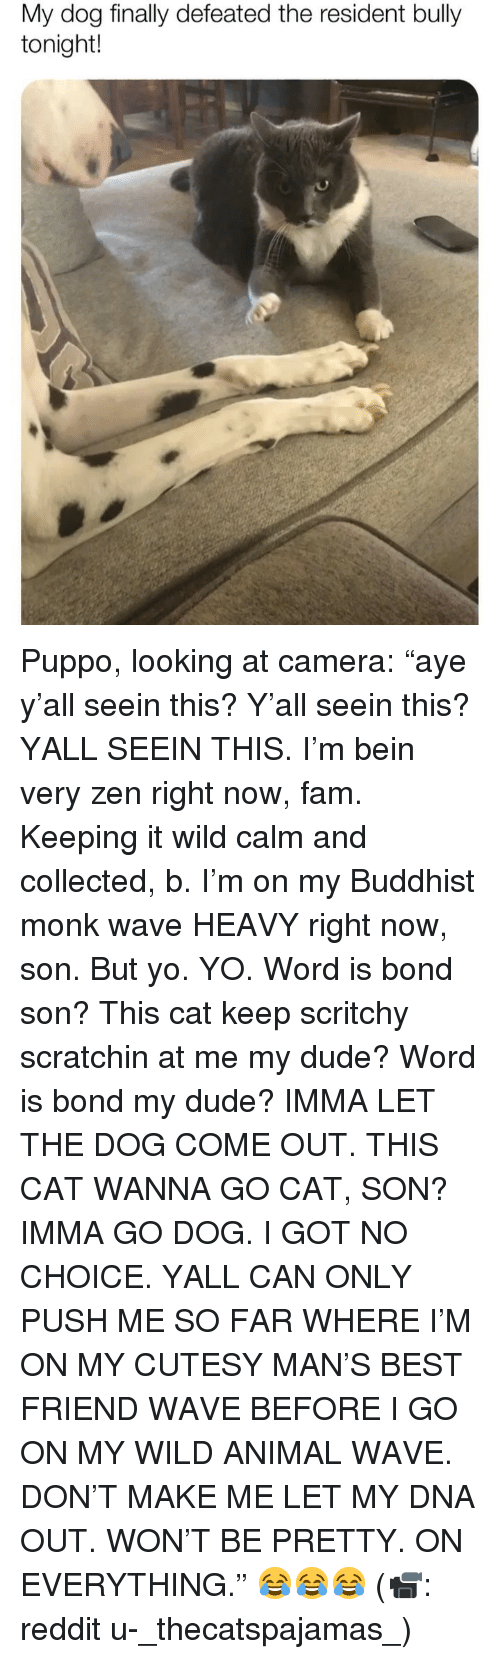 """Best Friend, Dude, and Fam: My dog finally defeated the resident bully  tonight! Puppo, looking at camera: """"aye y'all seein this? Y'all seein this? YALL SEEIN THIS. I'm bein very zen right now, fam. Keeping it wild calm and collected, b. I'm on my Buddhist monk wave HEAVY right now, son. But yo. YO. Word is bond son? This cat keep scritchy scratchin at me my dude? Word is bond my dude? IMMA LET THE DOG COME OUT. THIS CAT WANNA GO CAT, SON? IMMA GO DOG. I GOT NO CHOICE. YALL CAN ONLY PUSH ME SO FAR WHERE I'M ON MY CUTESY MAN'S BEST FRIEND WAVE BEFORE I GO ON MY WILD ANIMAL WAVE. DON'T MAKE ME LET MY DNA OUT. WON'T BE PRETTY. ON EVERYTHING."""" 😂😂😂 (📹: reddit u-_thecatspajamas_)"""